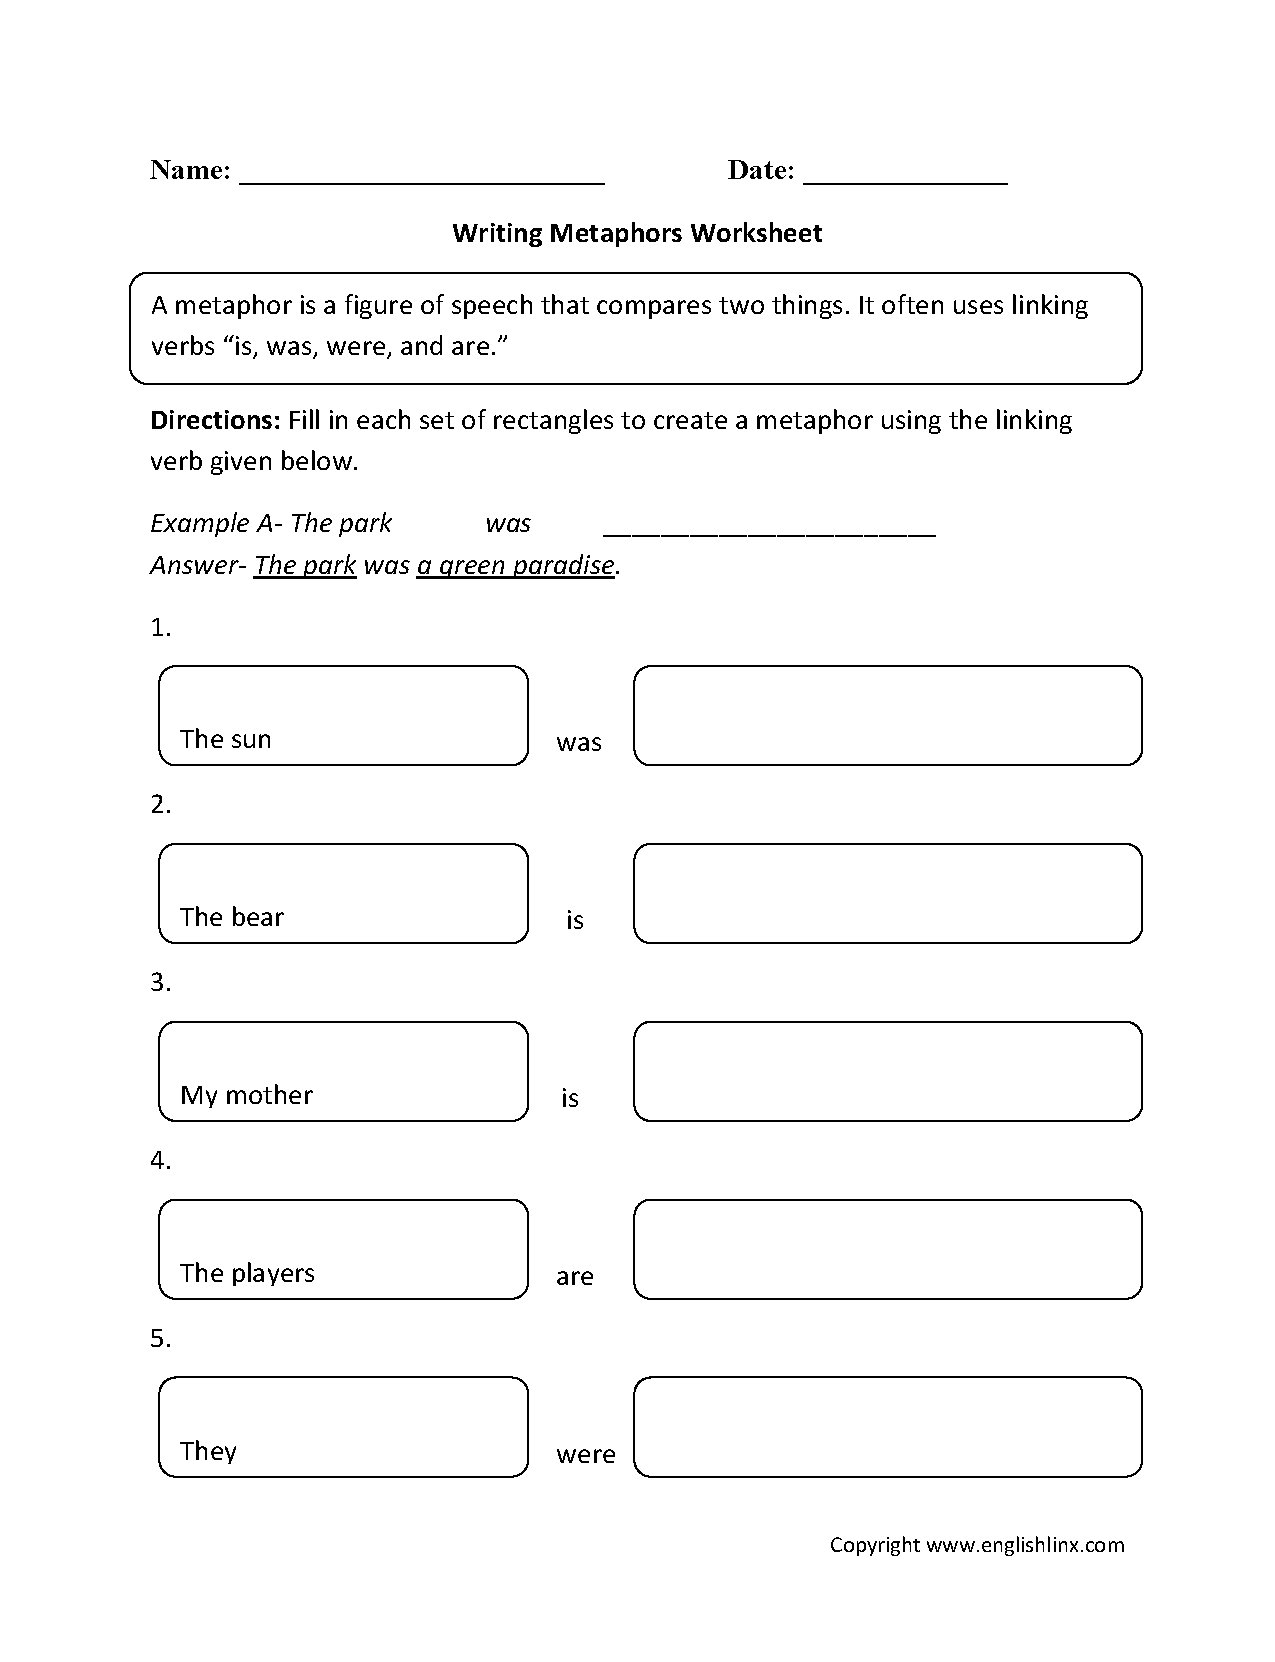 Writing Metaphors Worksheet Part 1 Beginner – What is a Metaphor Math Worksheet